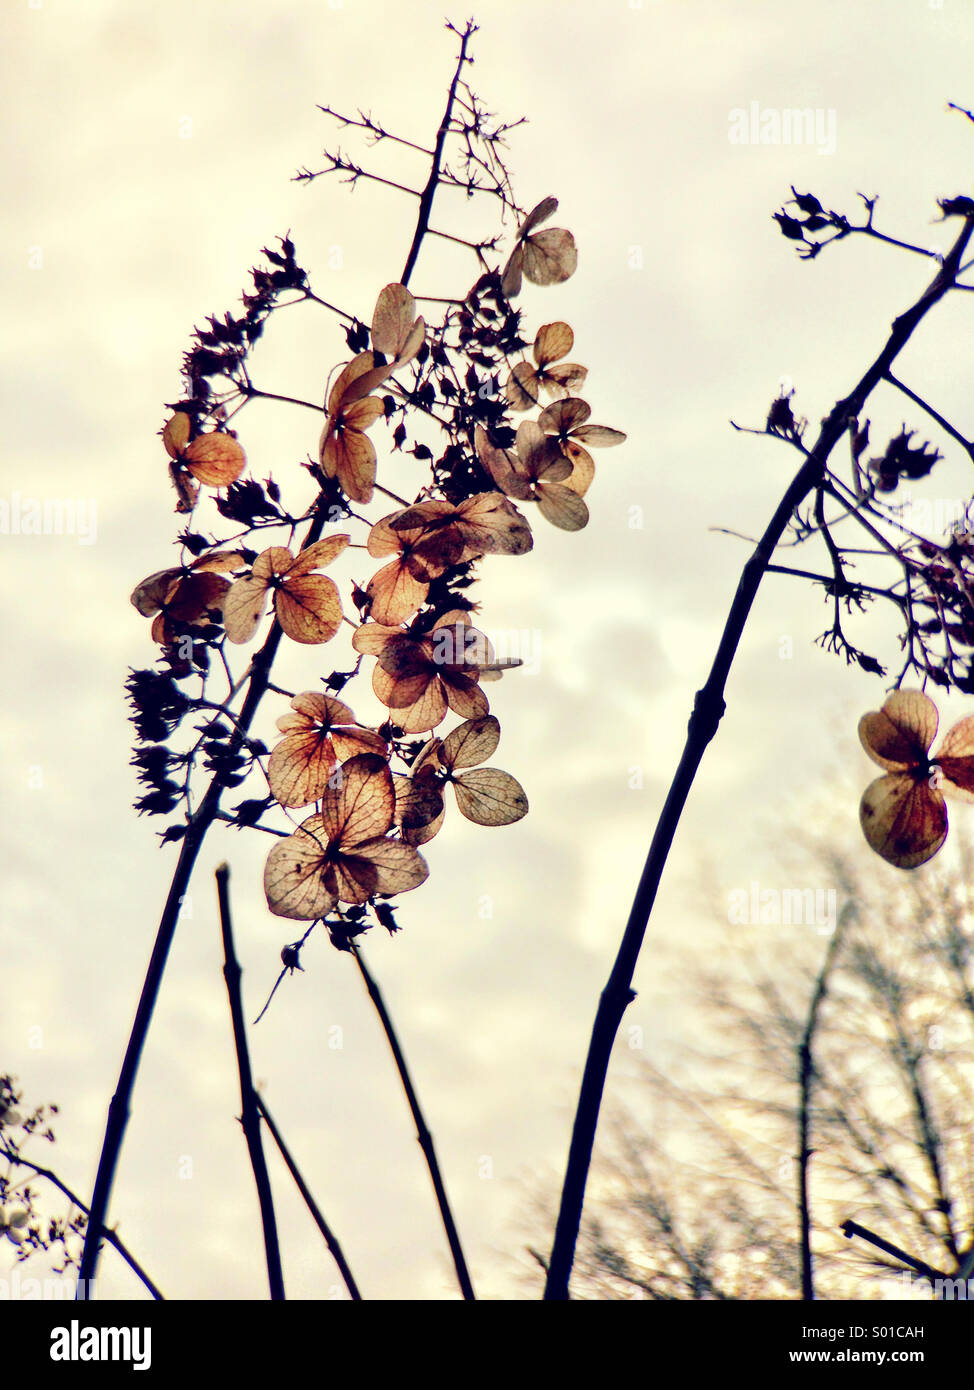 Dry flowers in winter. - Stock Image